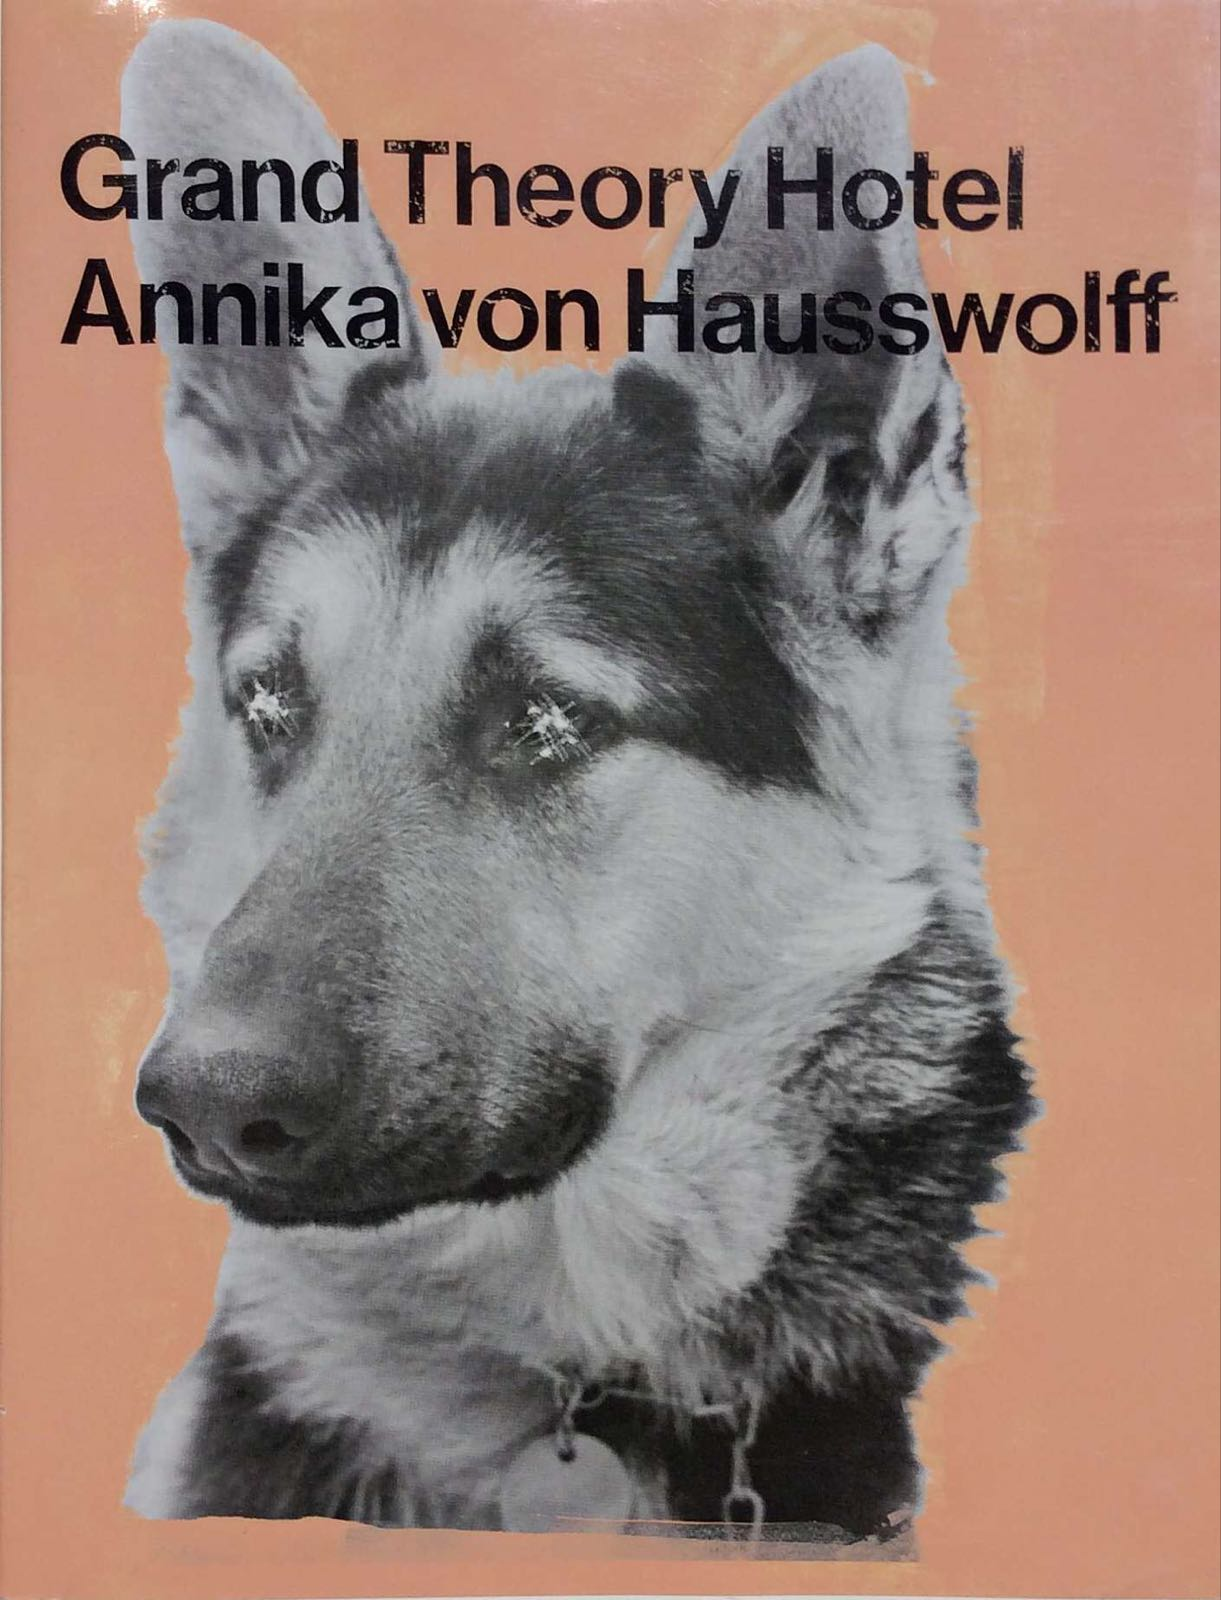 Hausswolf, Annika von. Grand Theory Hotel